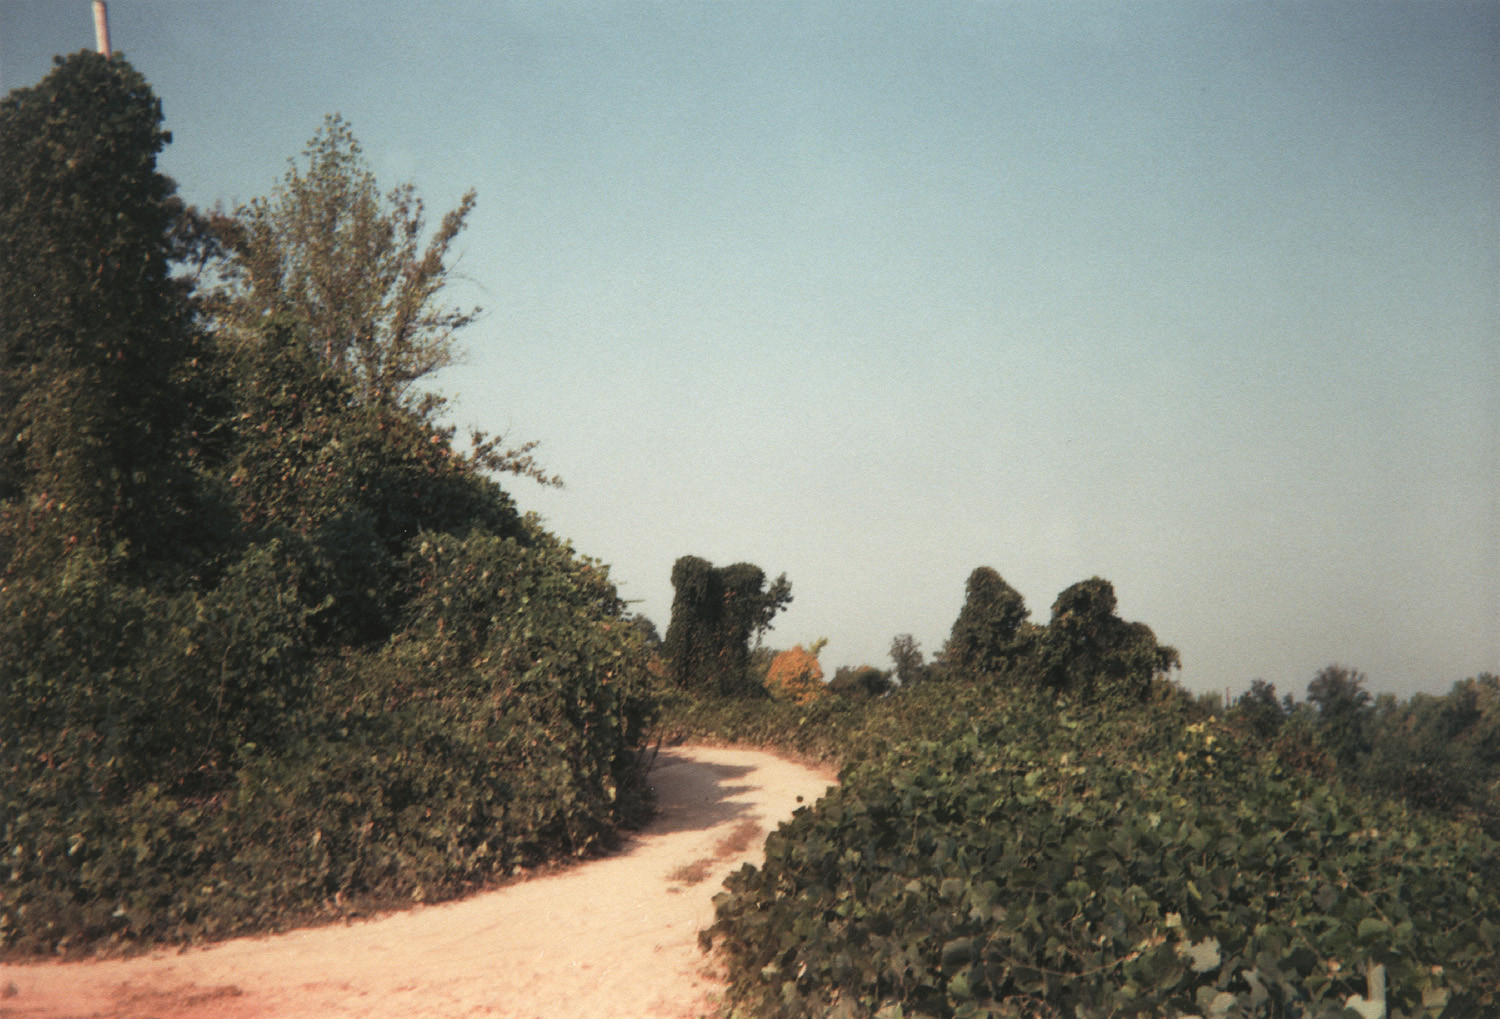 William Christenberry, Winding Road and Kudzu, Tuscaloosa County, Alabama, 1999